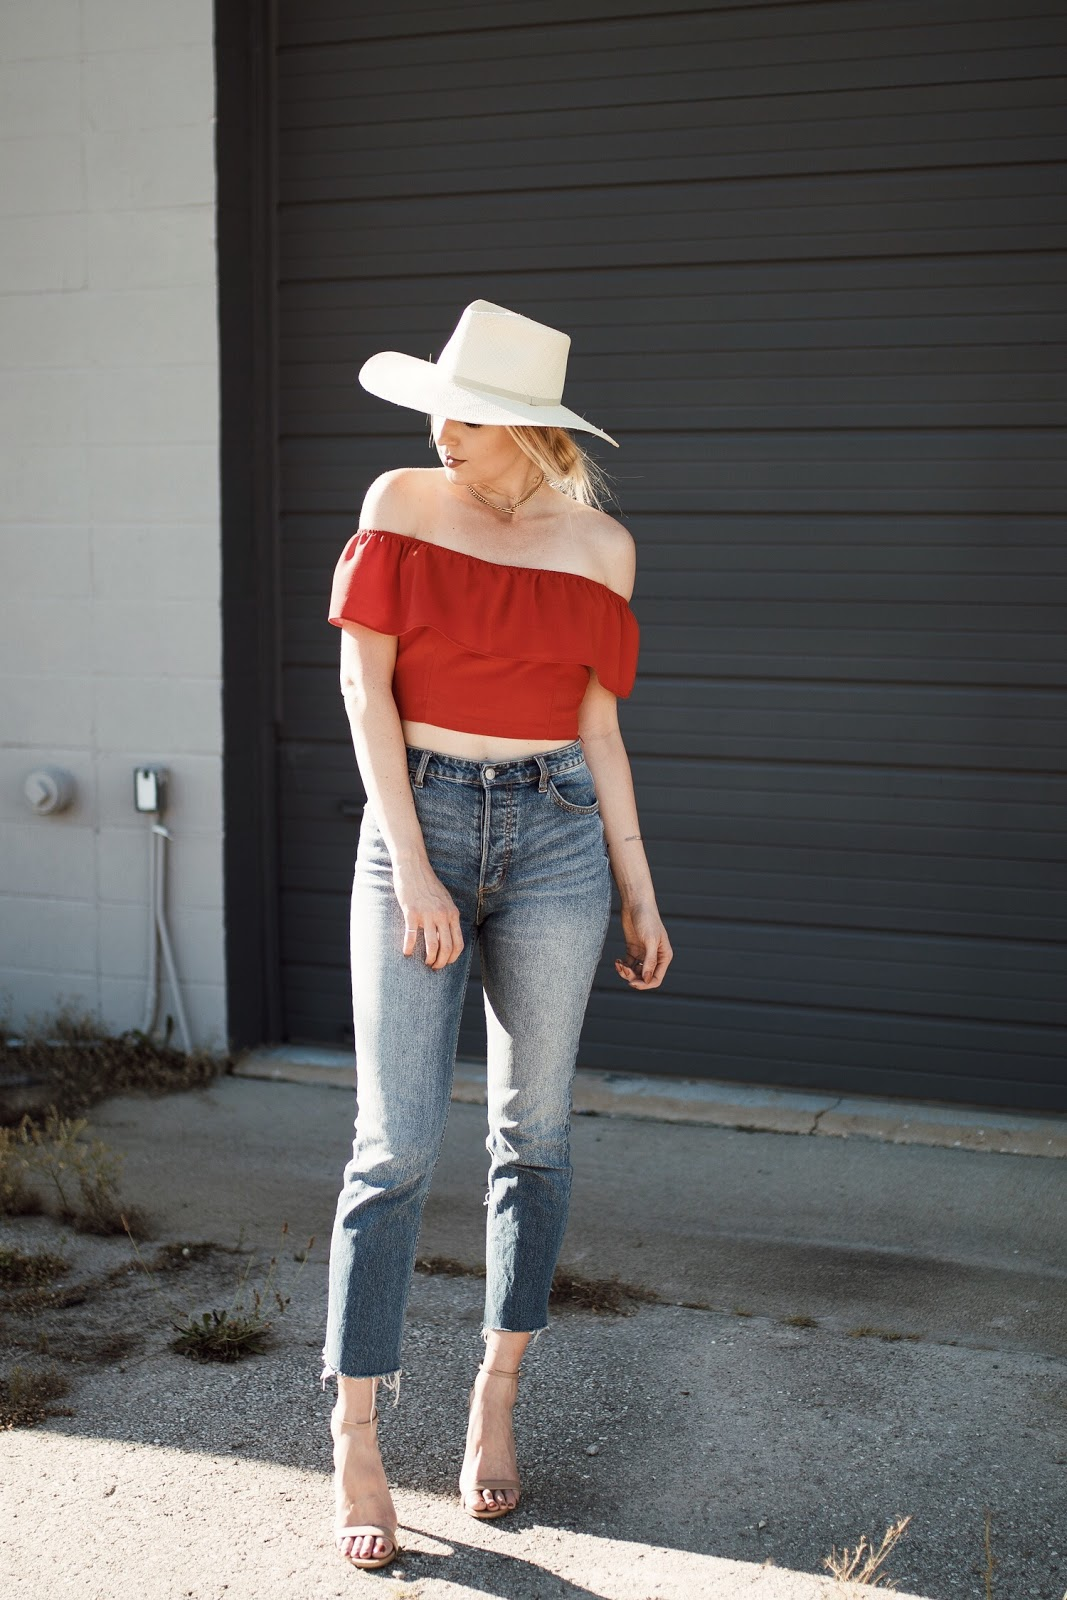 summertime outfit: high-waisted jeans, off the shoulder top, wide brim hat